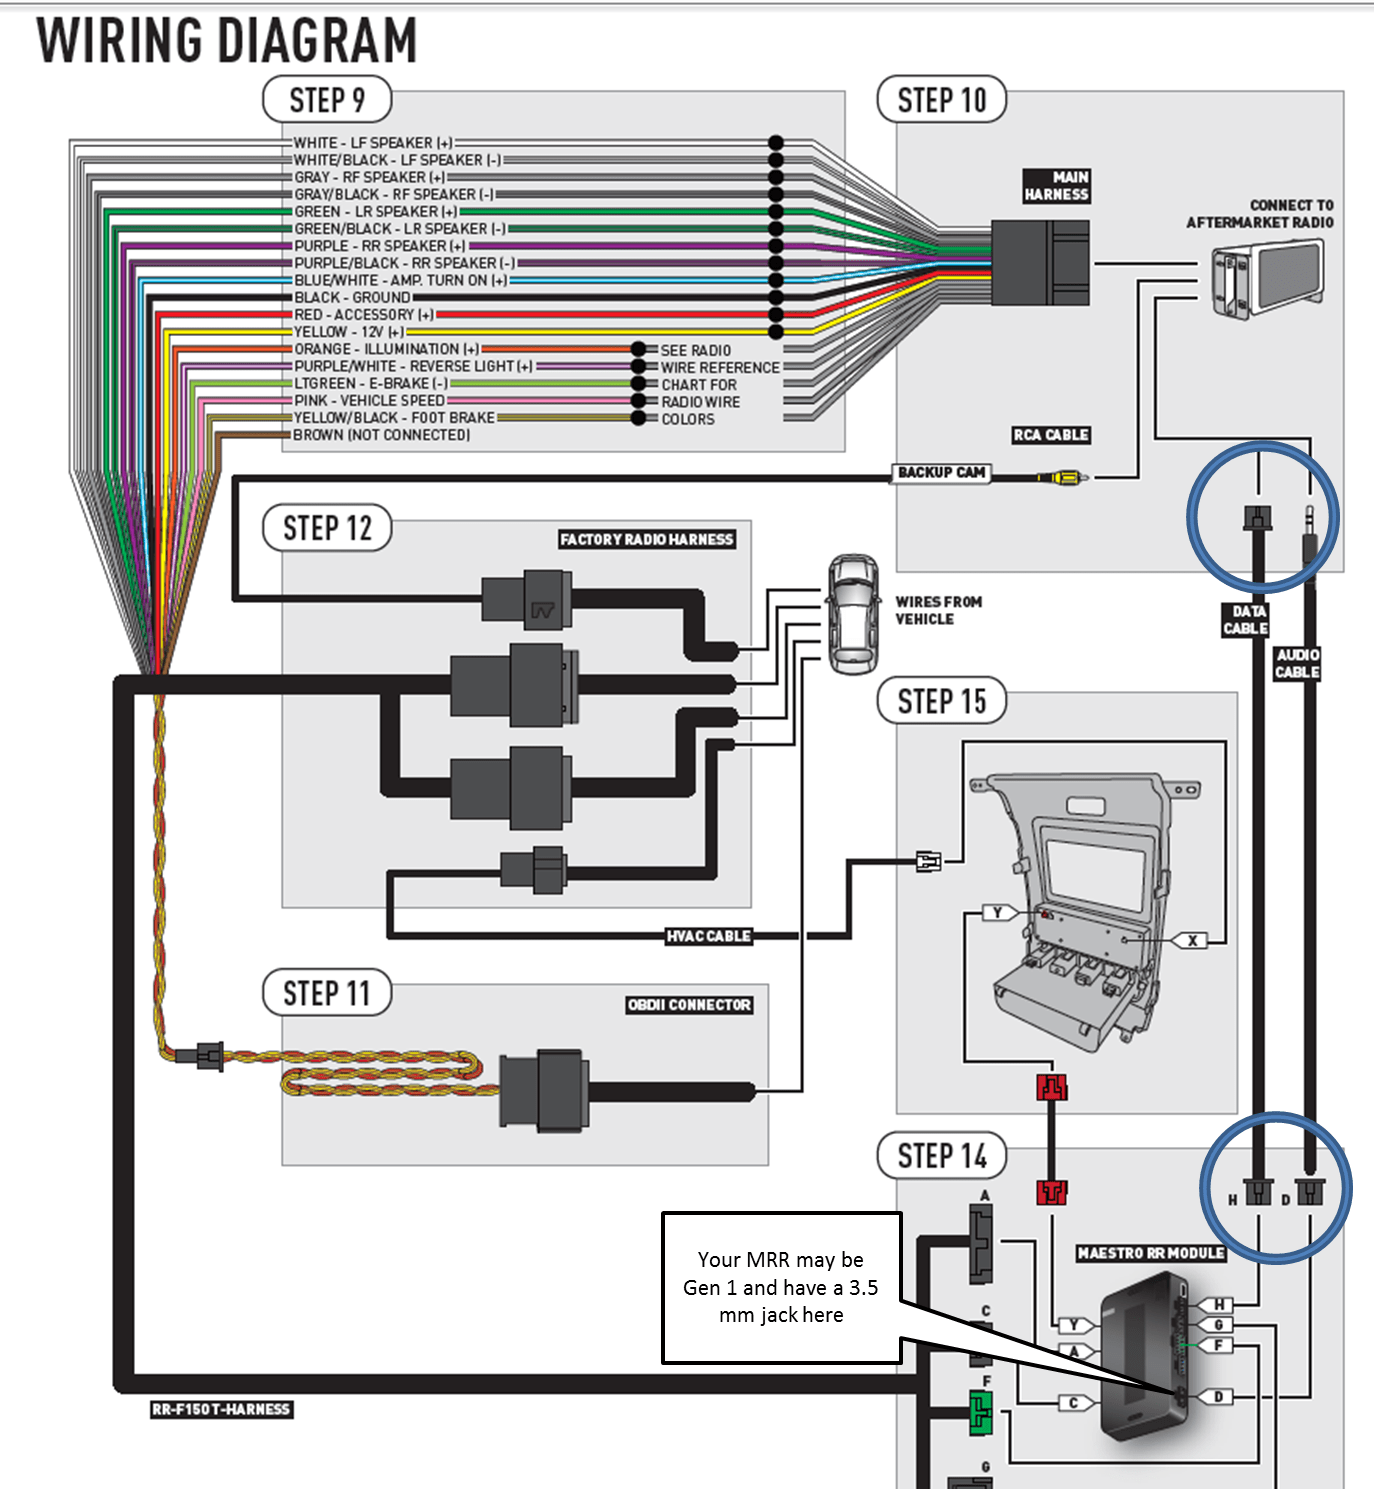 Wiring Diagram Together With Pioneer Deh Wiring Diagram On Pioneer Deh